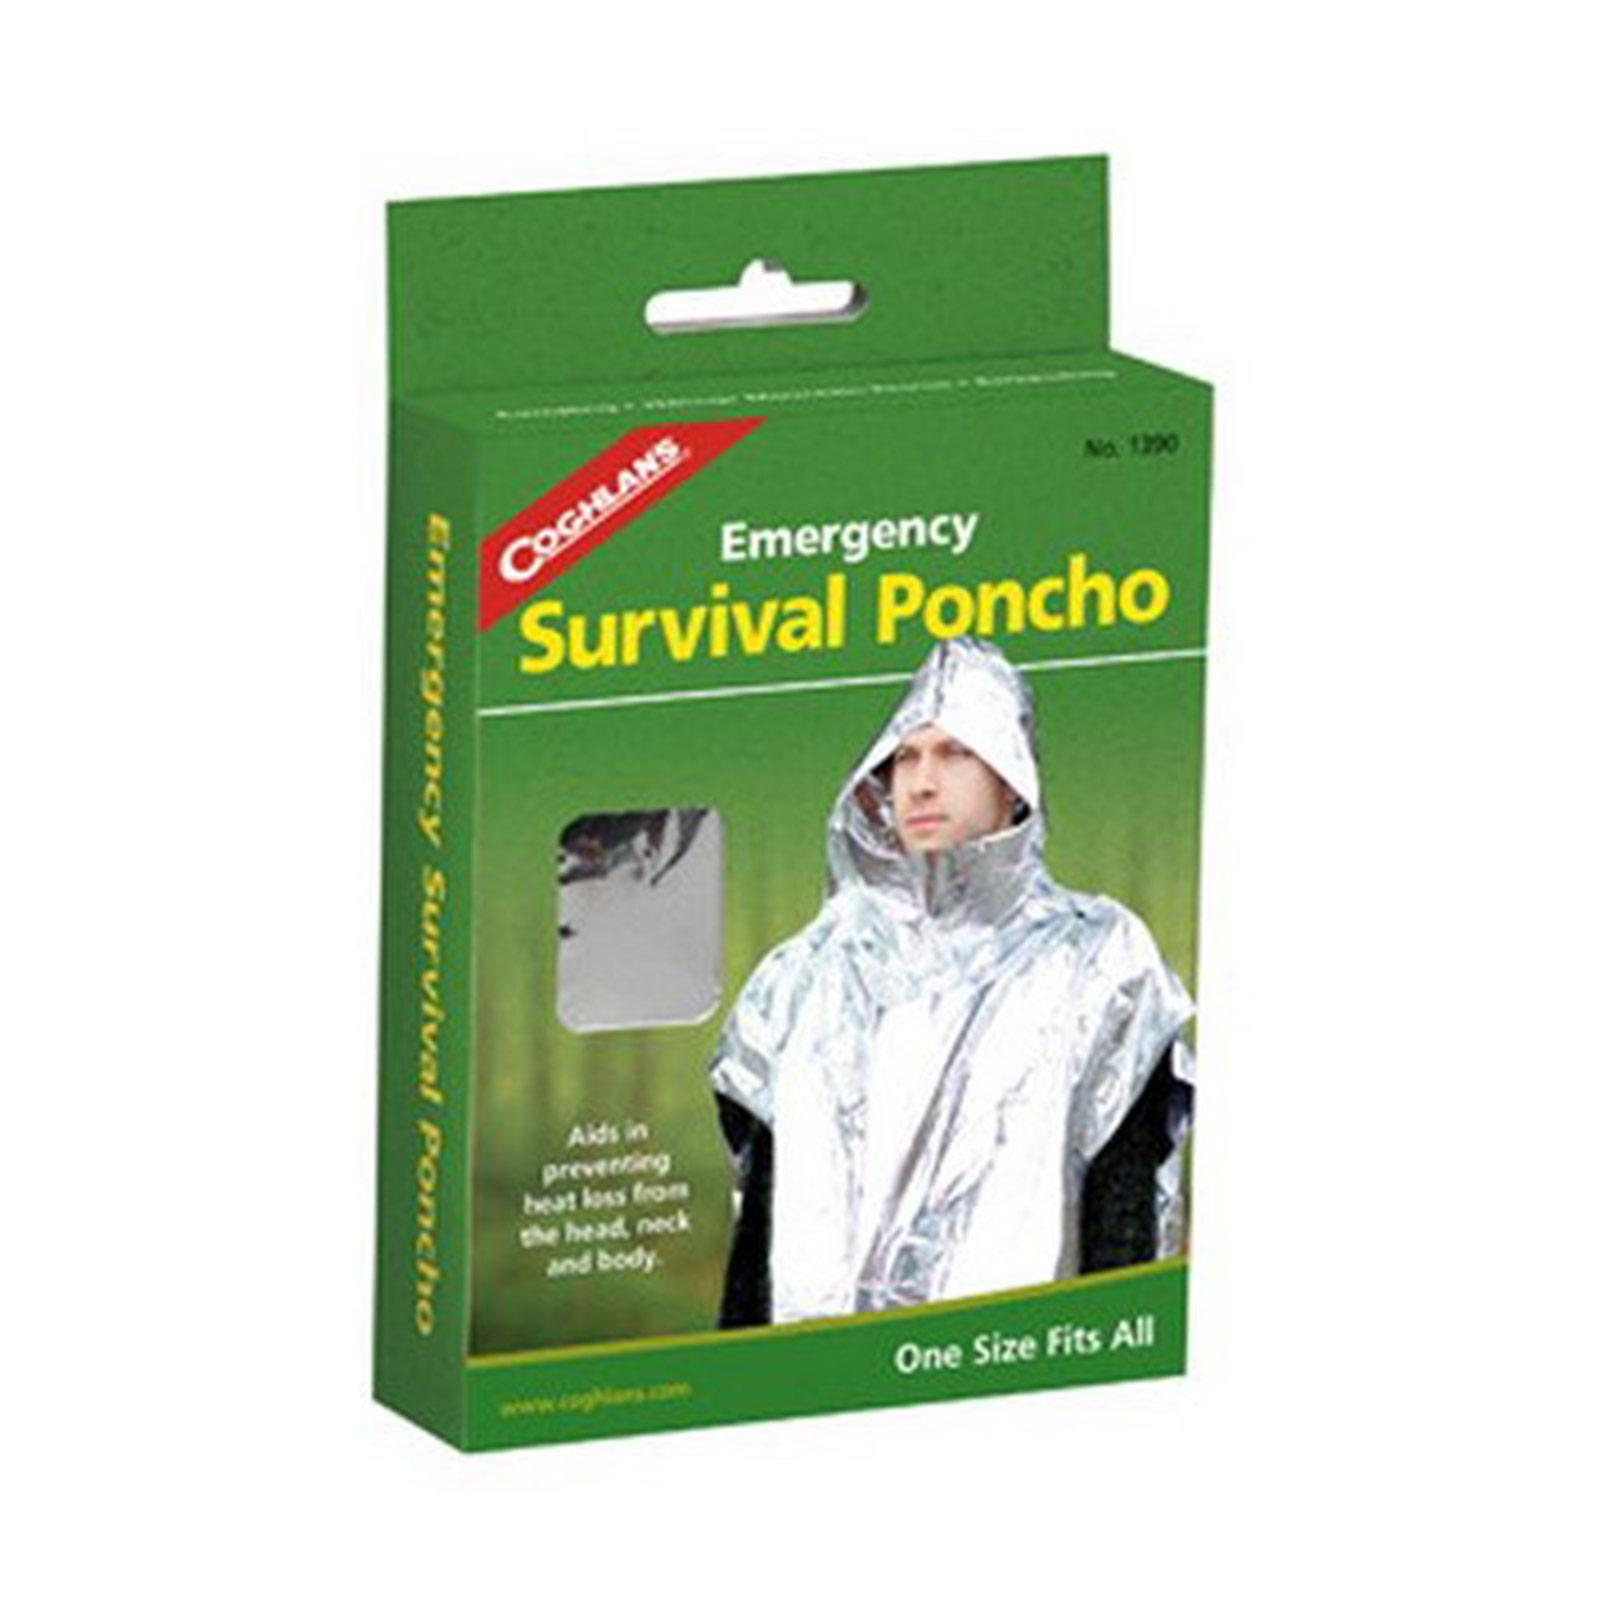 Coghlan's 1390 Emergency Survival Poncho by Coghlans